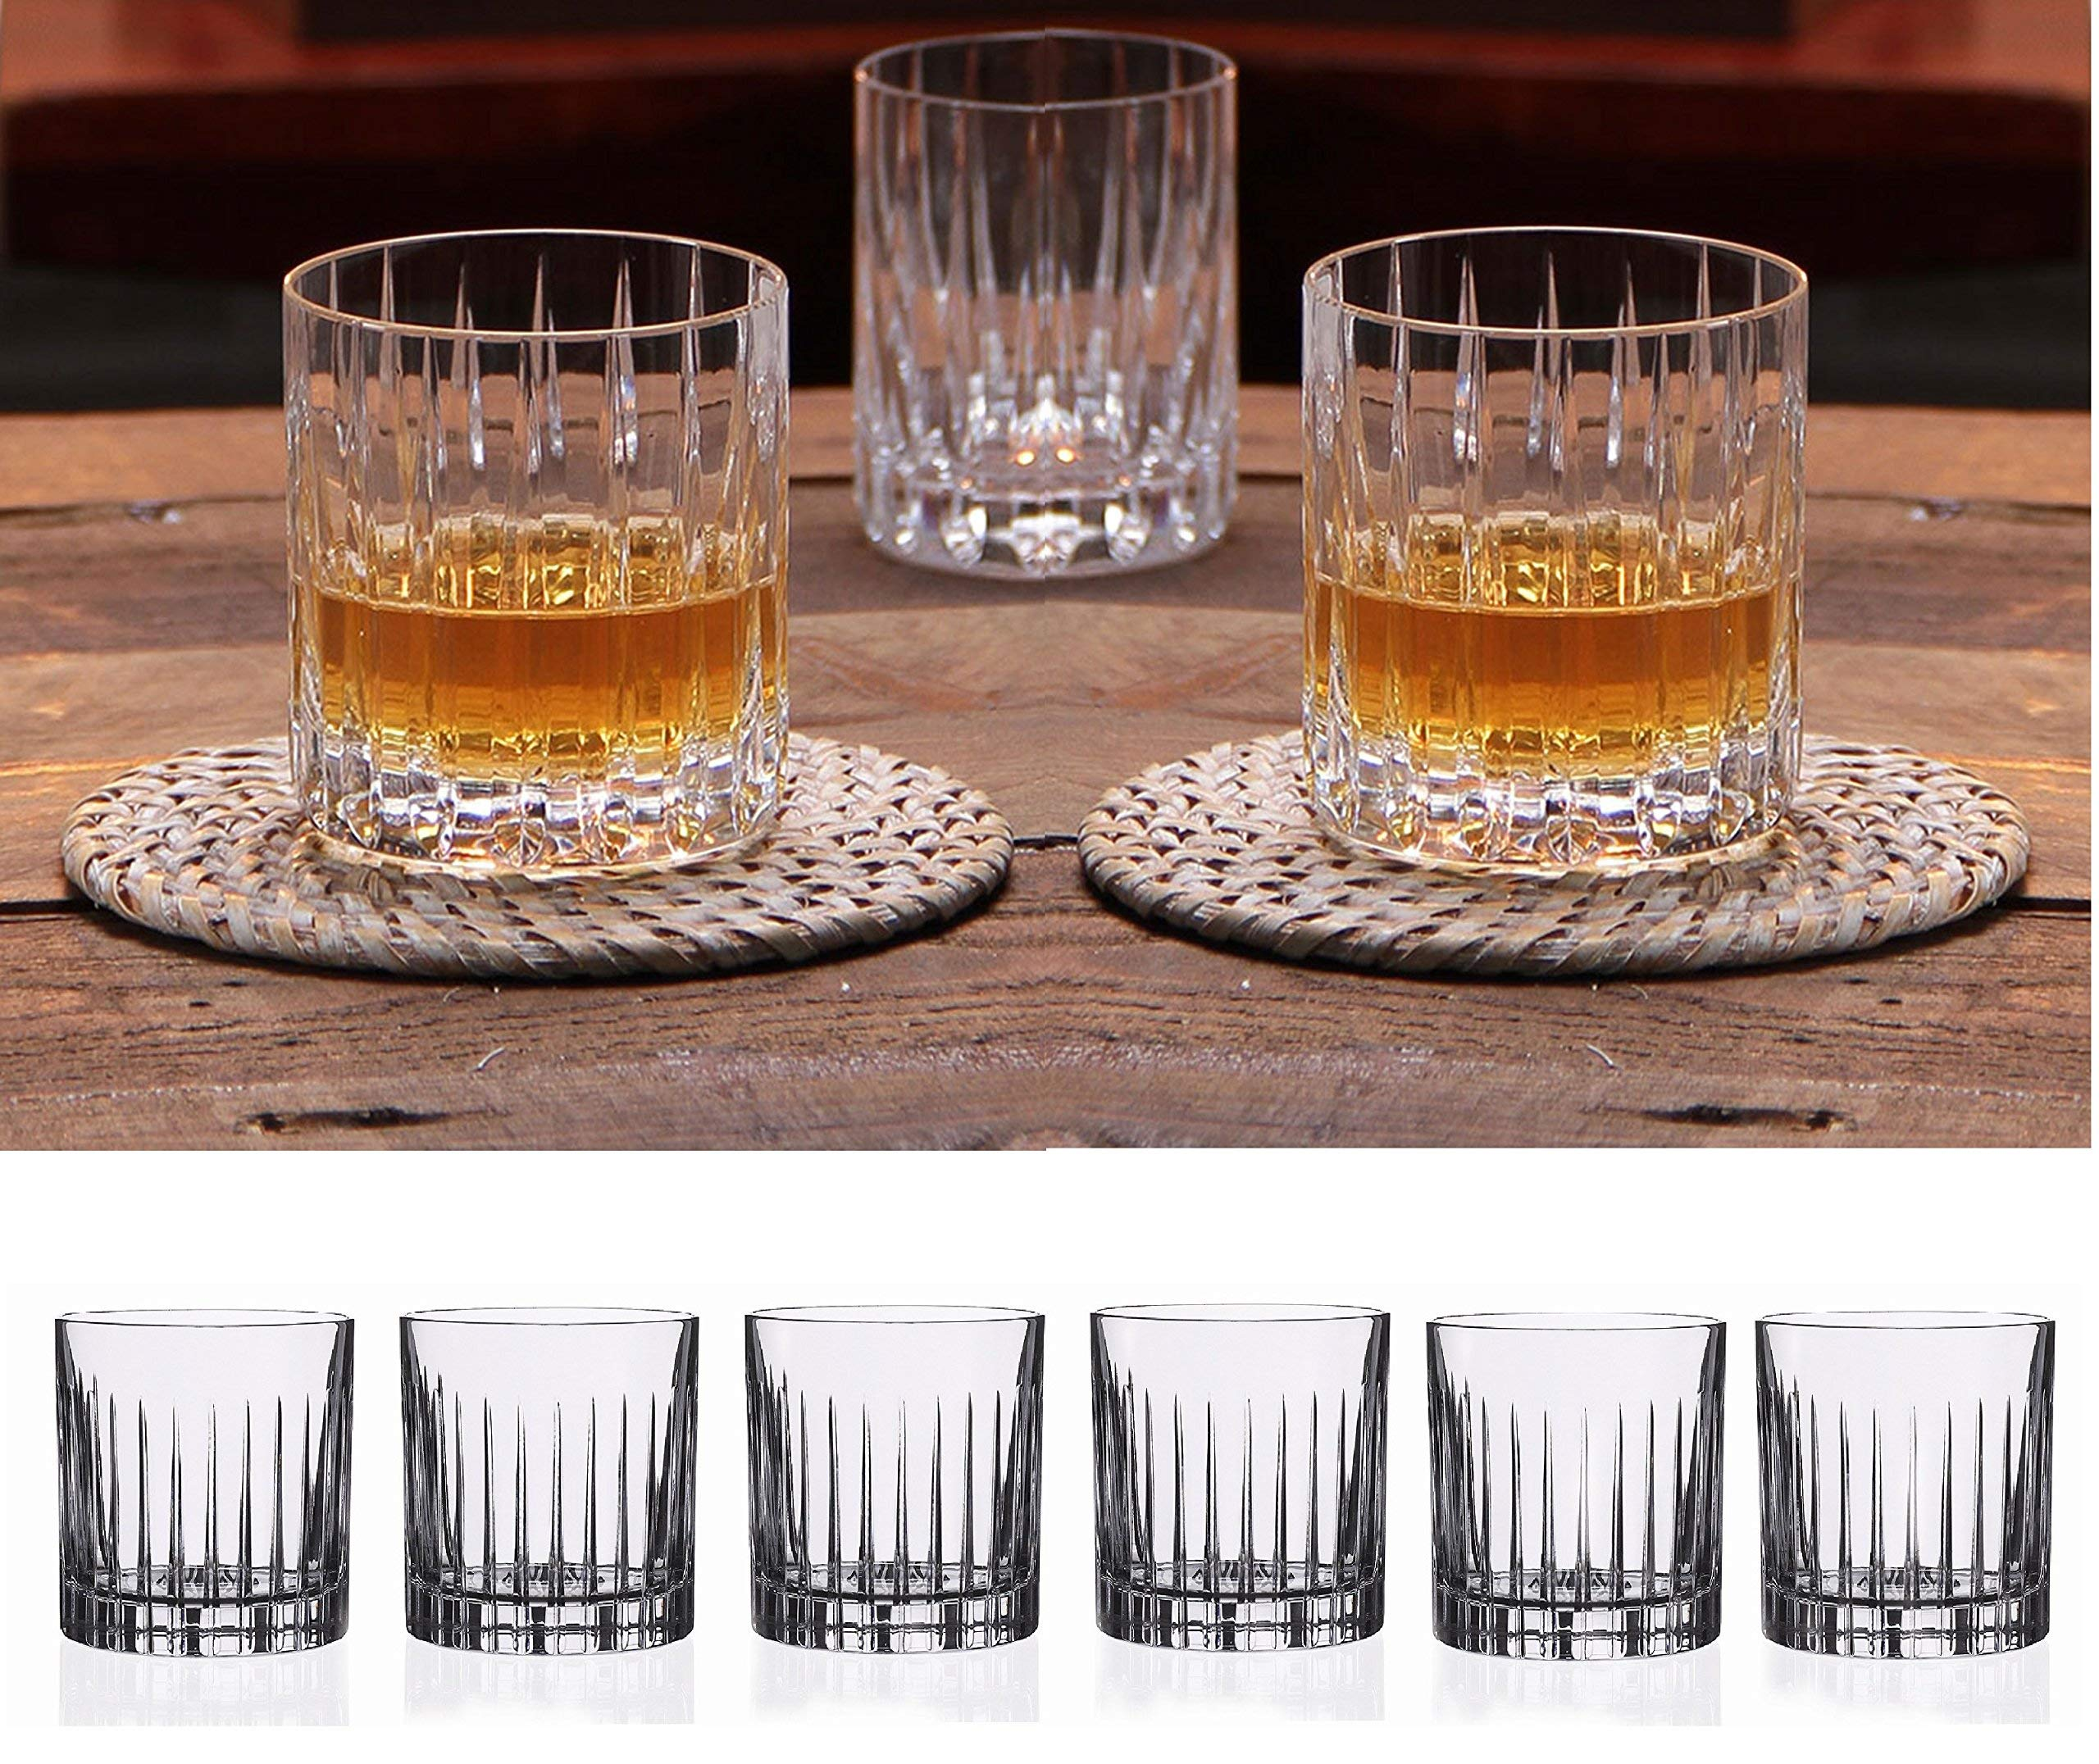 Double Old Fashioned Crystal Glasses, Set of 6, Perfect for serving scotch, whiskey or mixed drinks. (New York) pattern by Le'raze (Image #1)